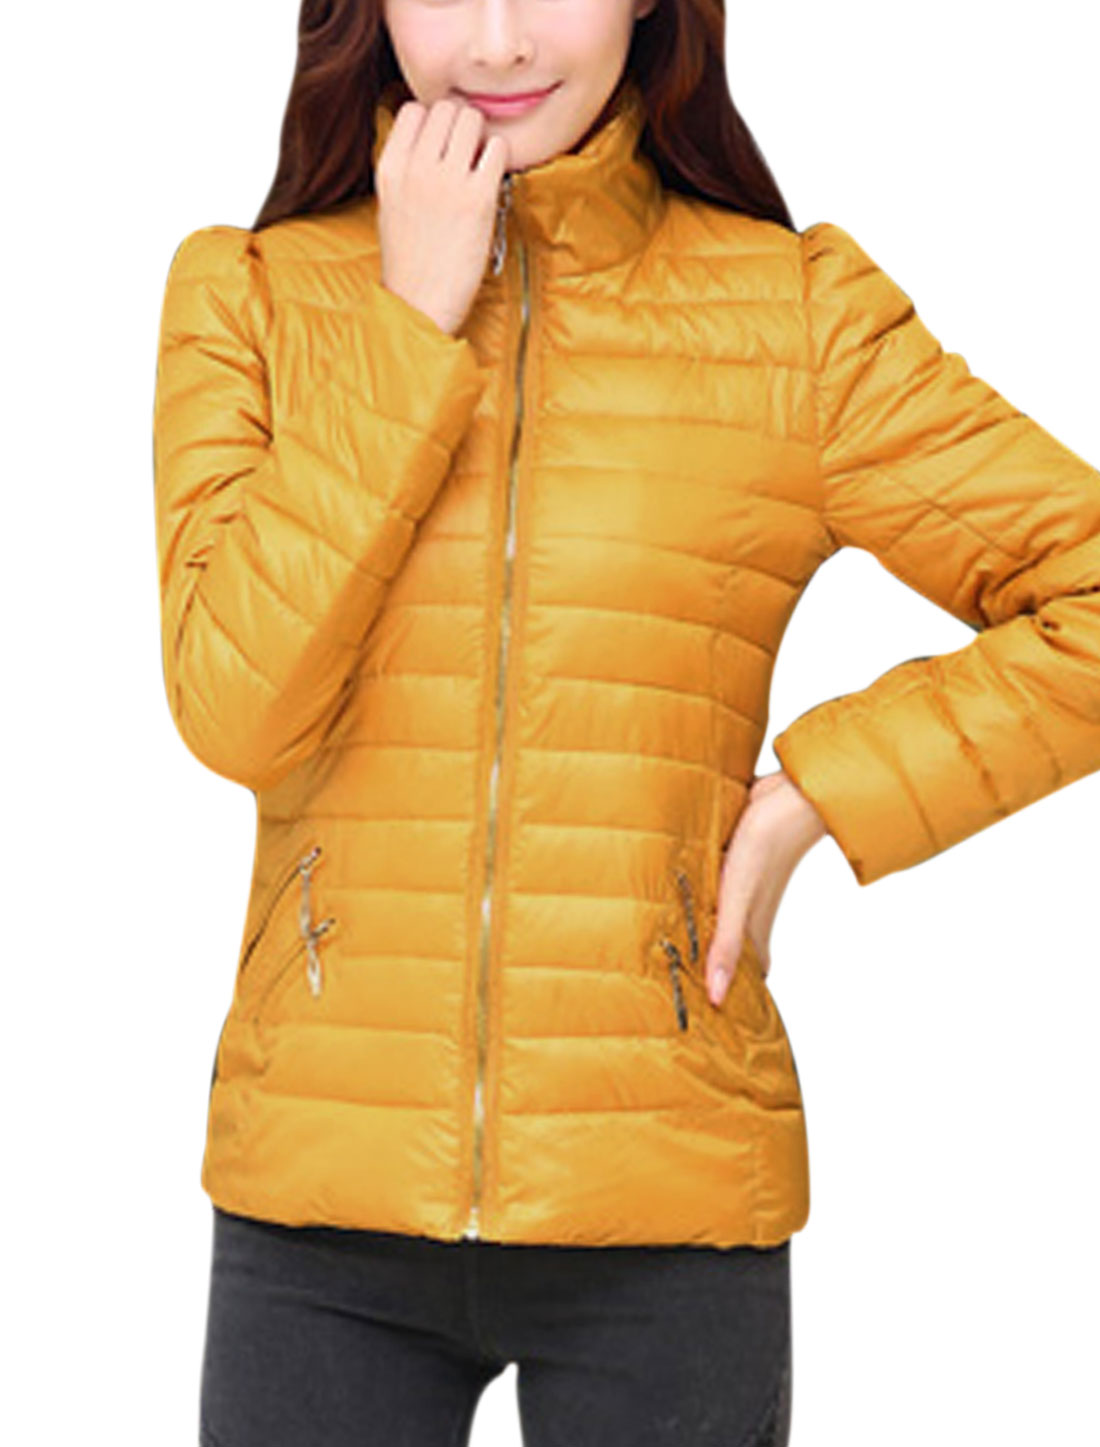 Lady Zipper Decor Back Stand Collar Leisure Padded Coat Orange Yellow M